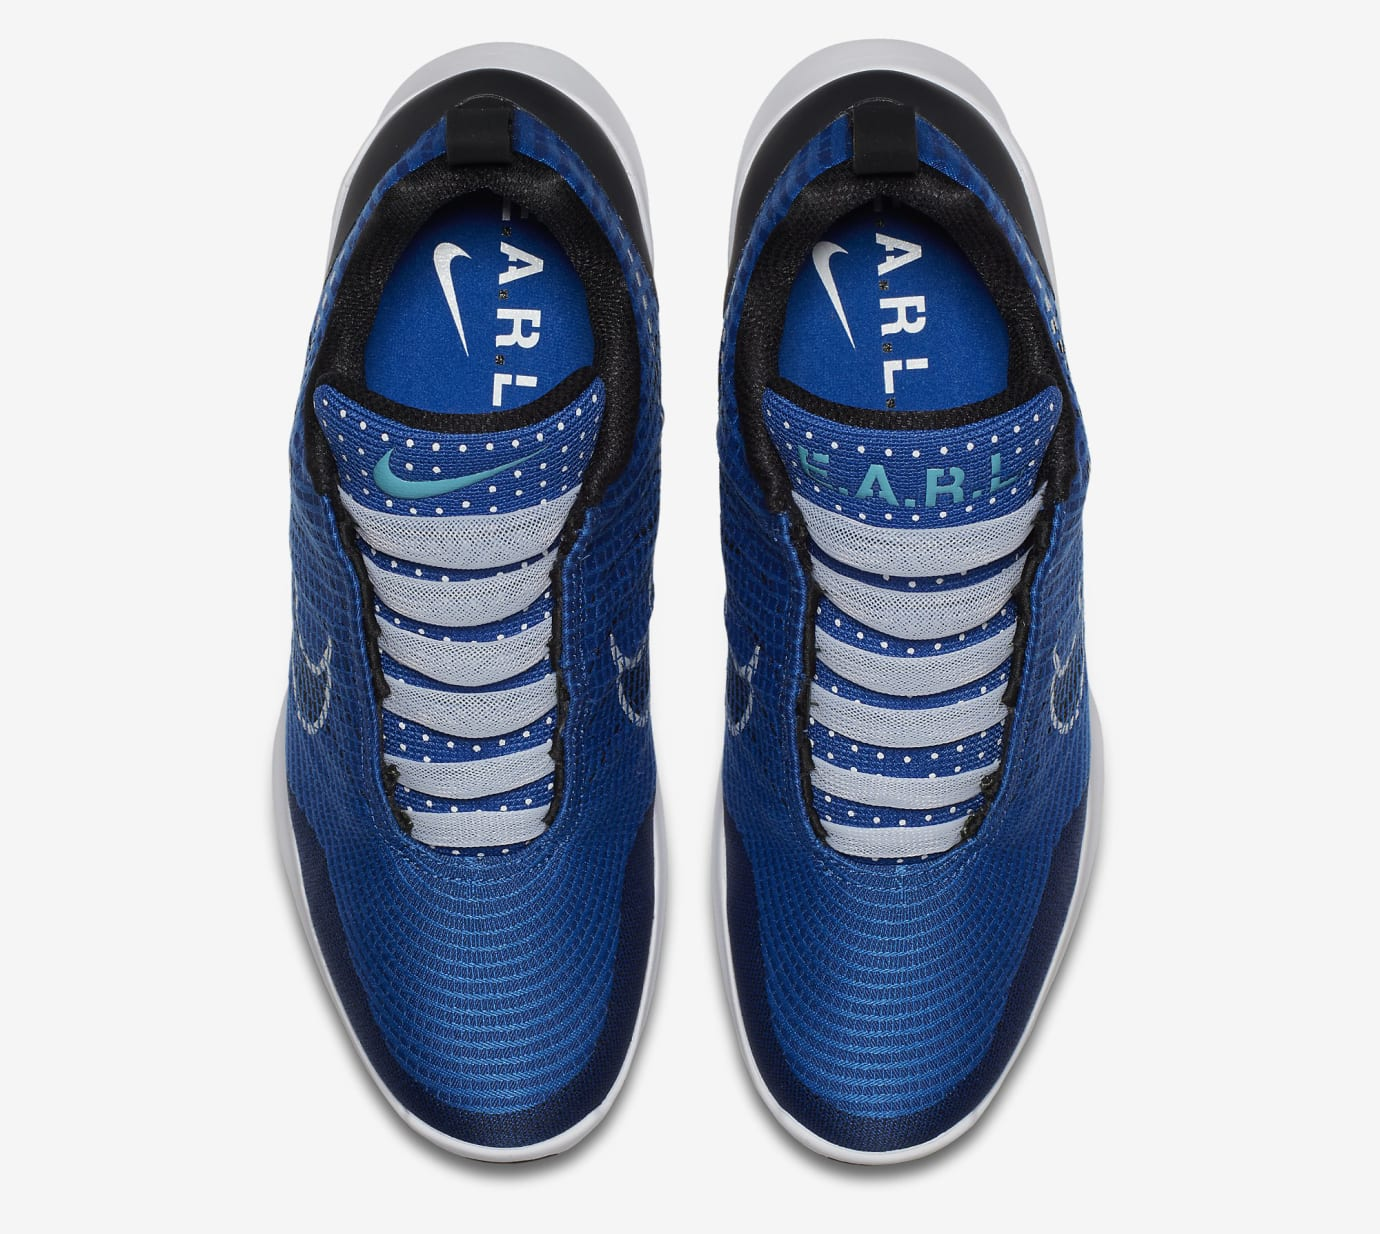 Sport Royal Nike HyperAdapt 843871-400 Top